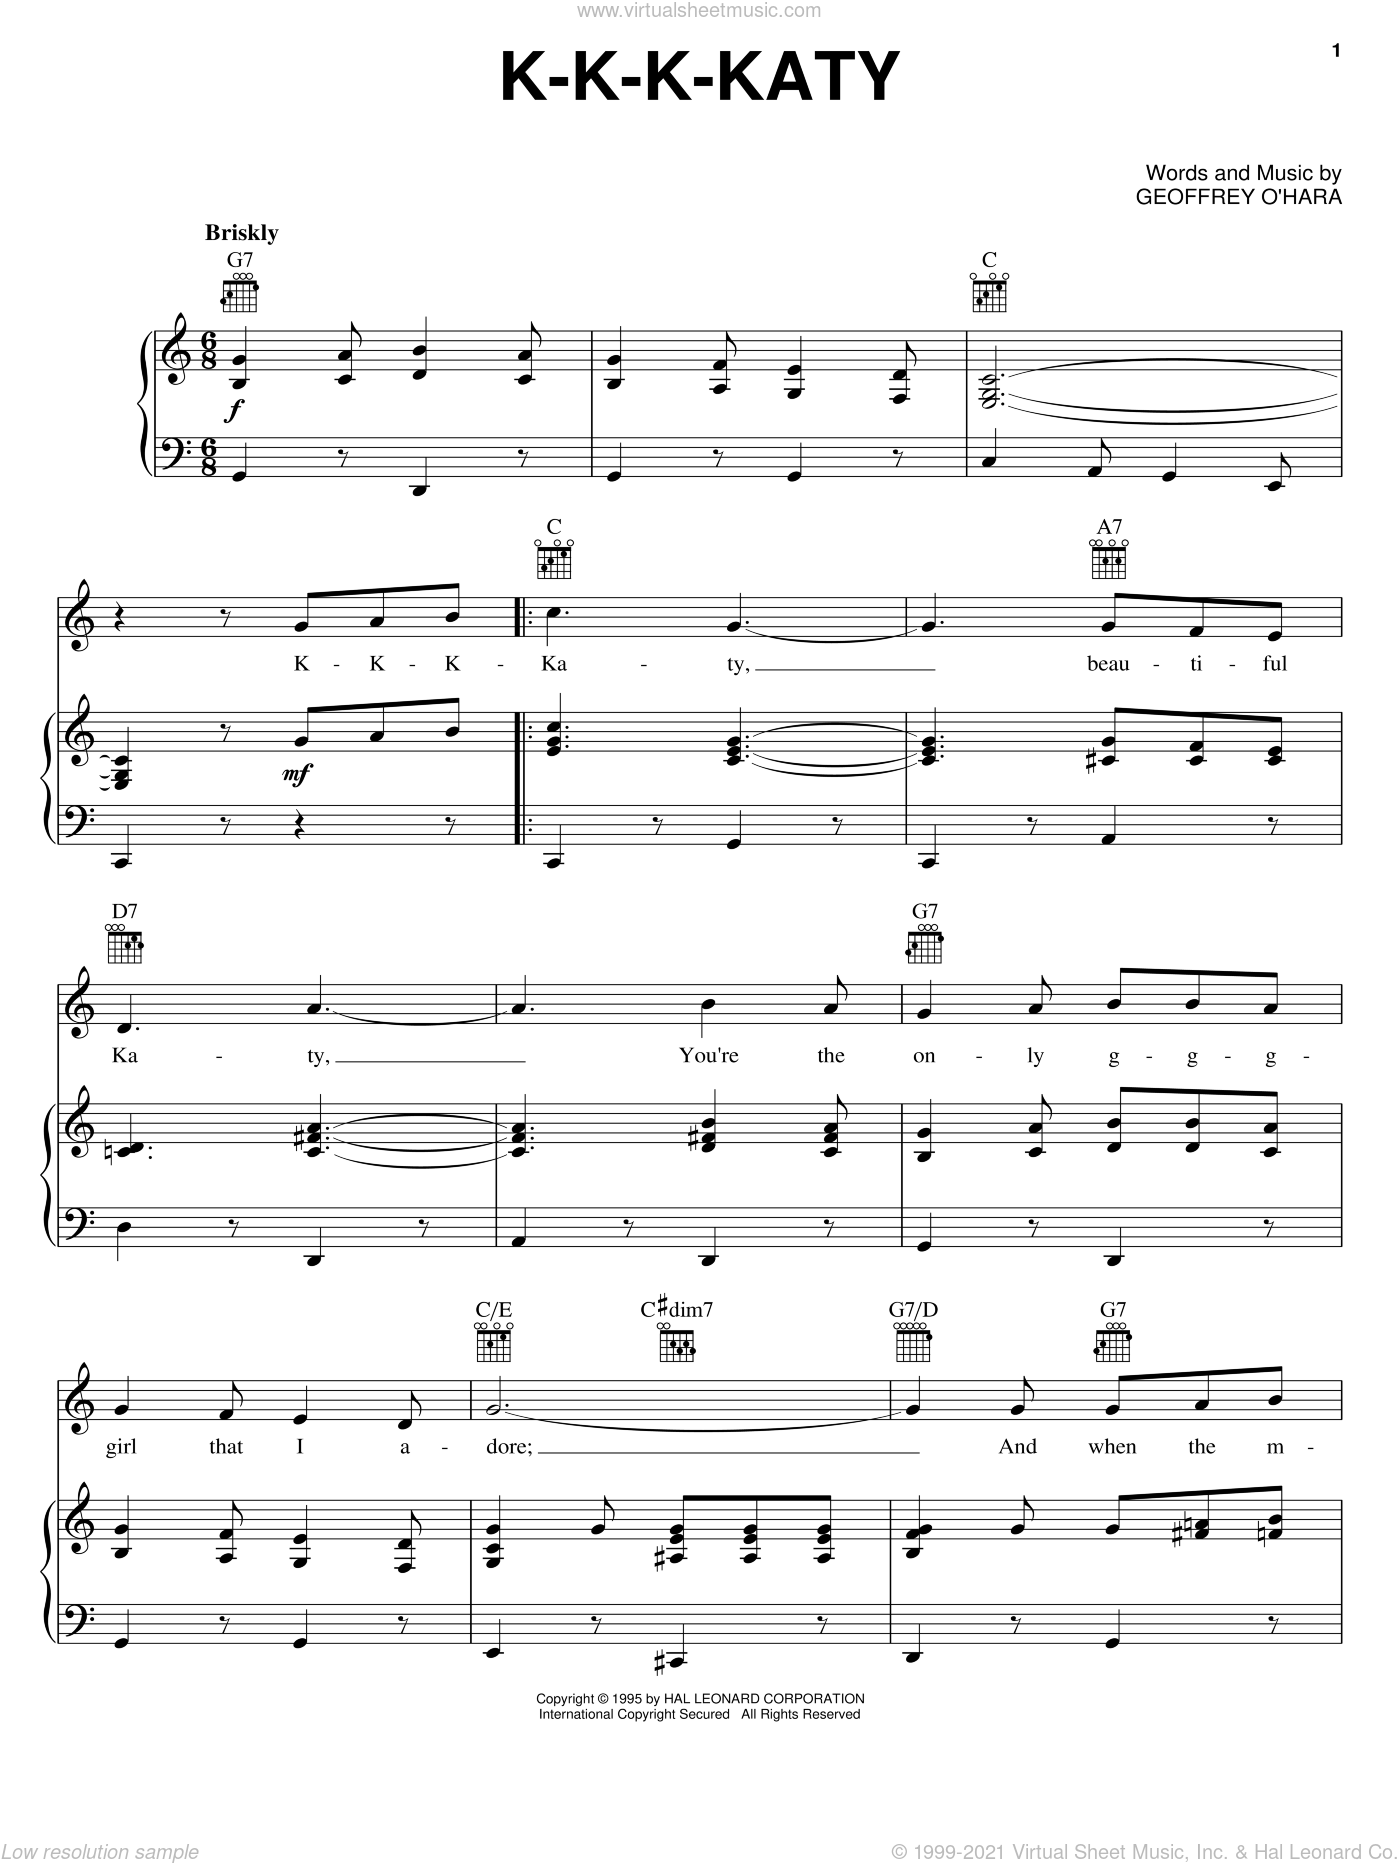 K-K-K-Katy sheet music for voice, piano or guitar by Geoffrey O'Hara, intermediate skill level